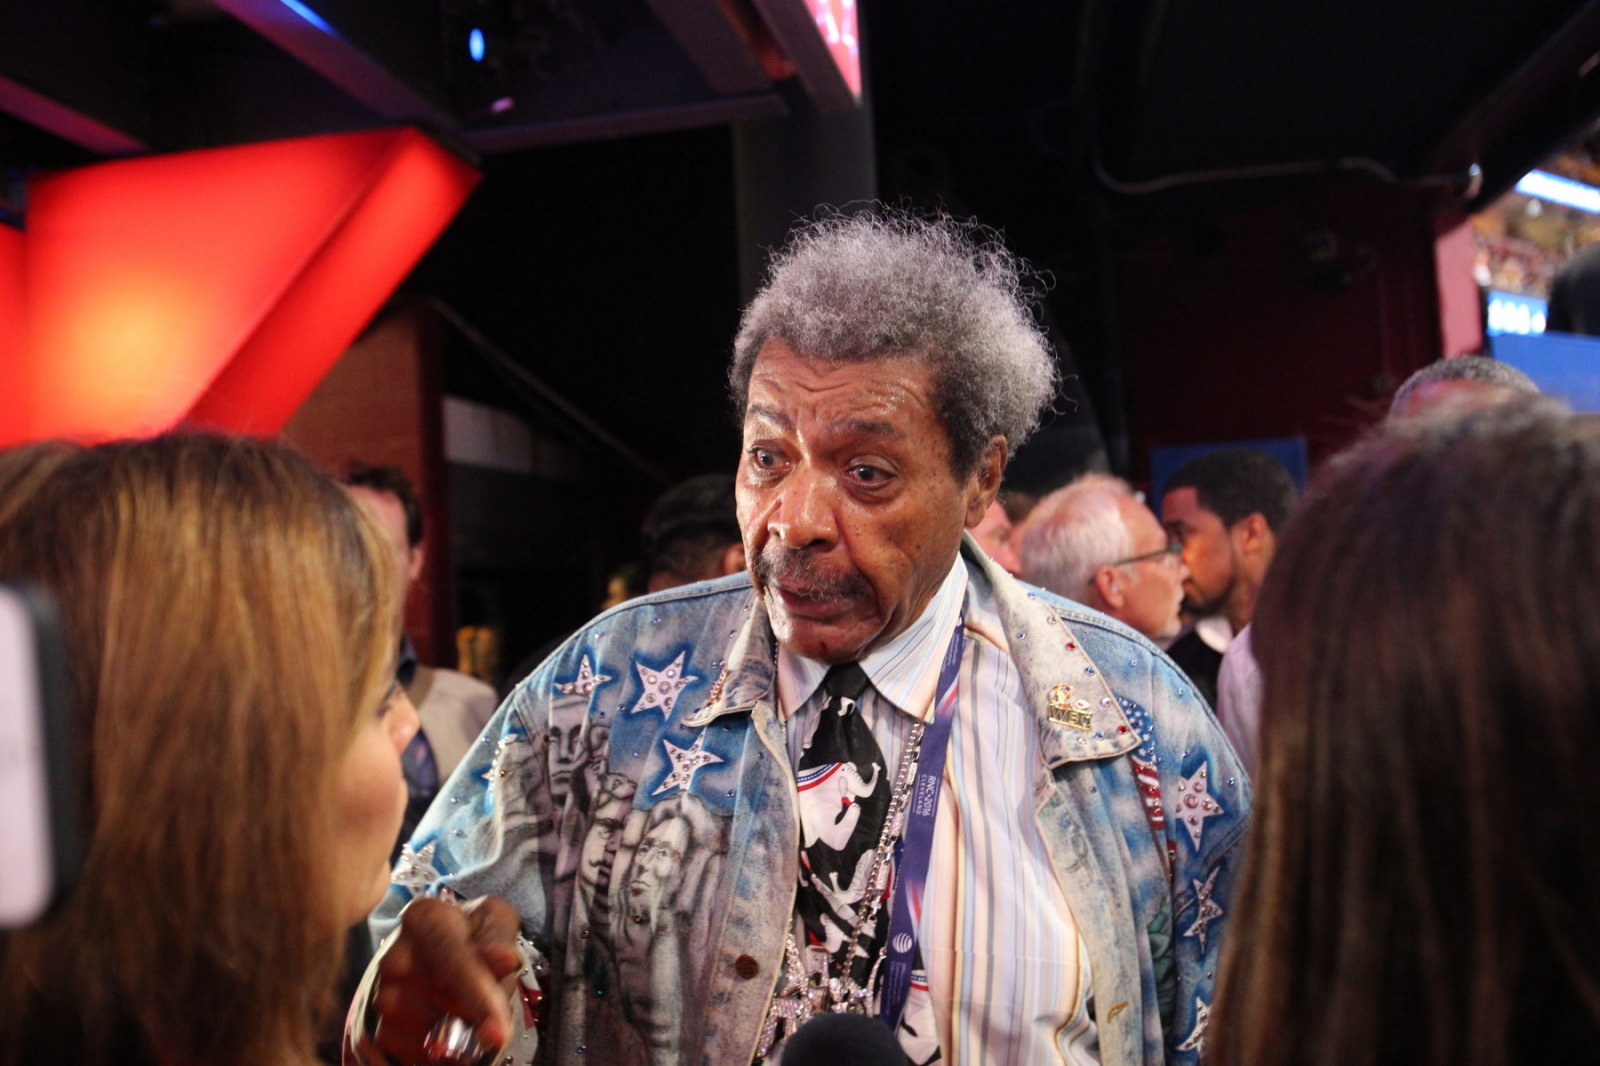 Former boxing promoter Don King at the Republican National Convention. July 20, 2016 (Kevin C Downs).